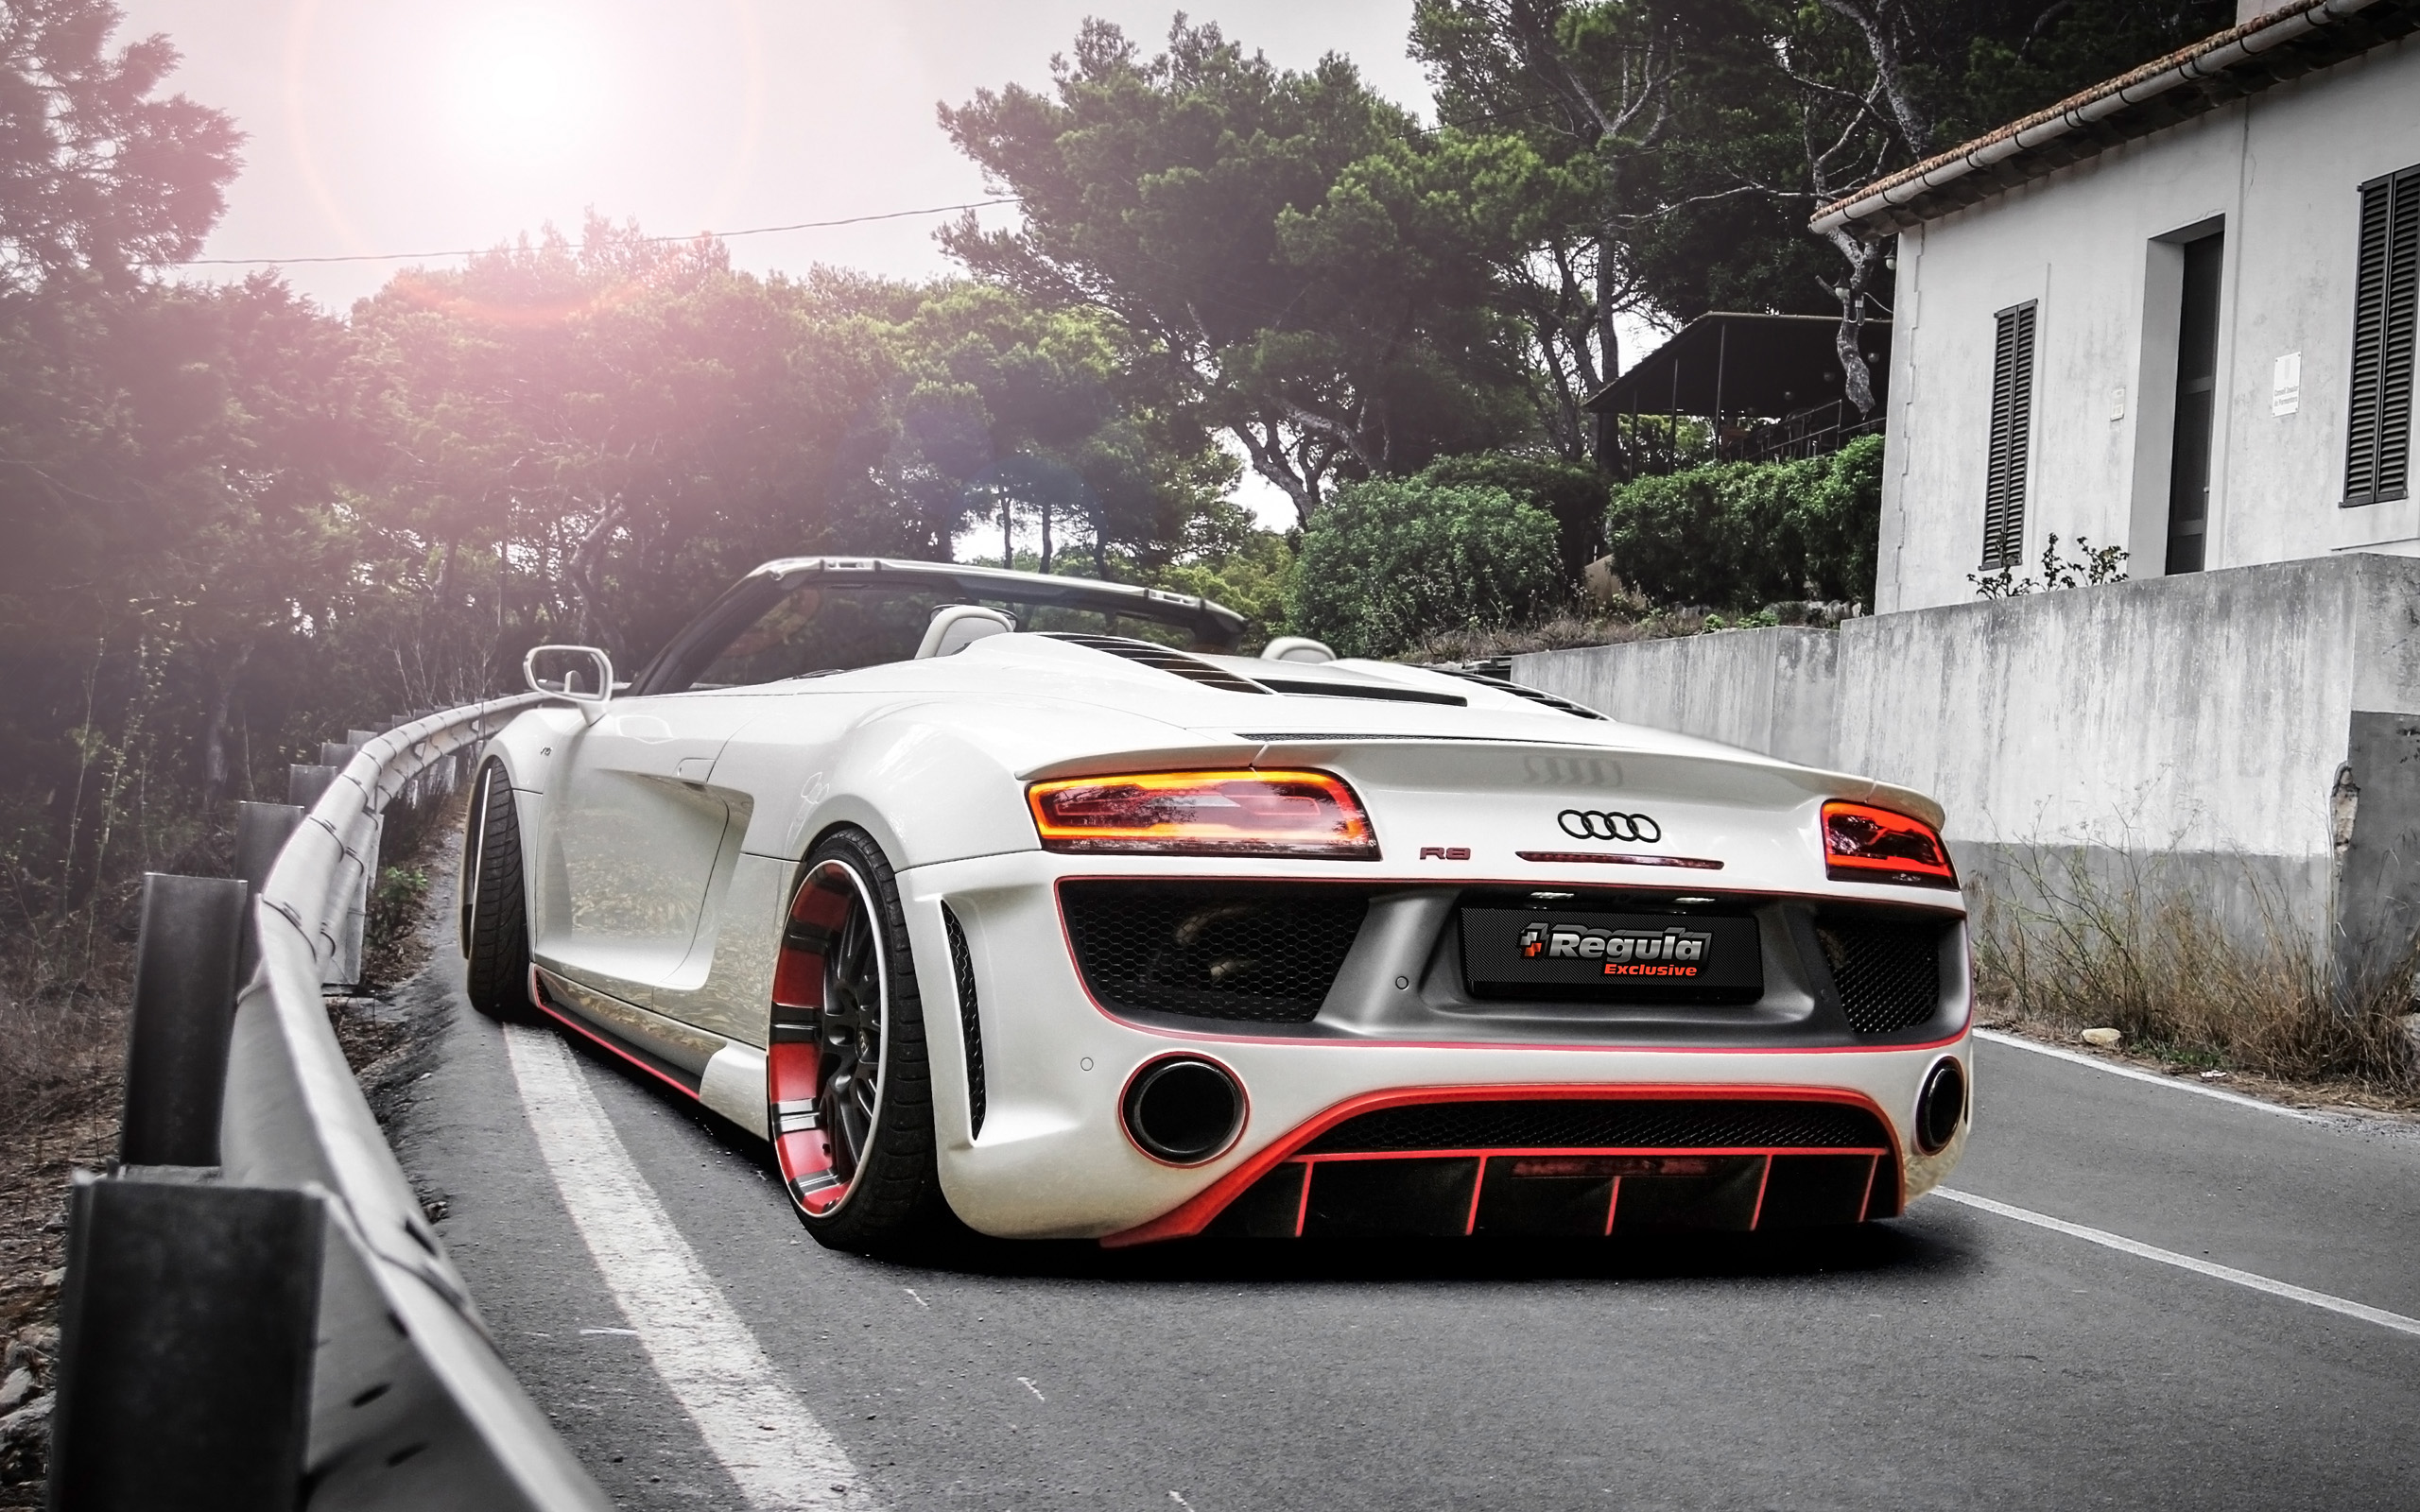 2014 Audi R8 V10 Spyder By Regula Tuning 2 Wallpaper Hd